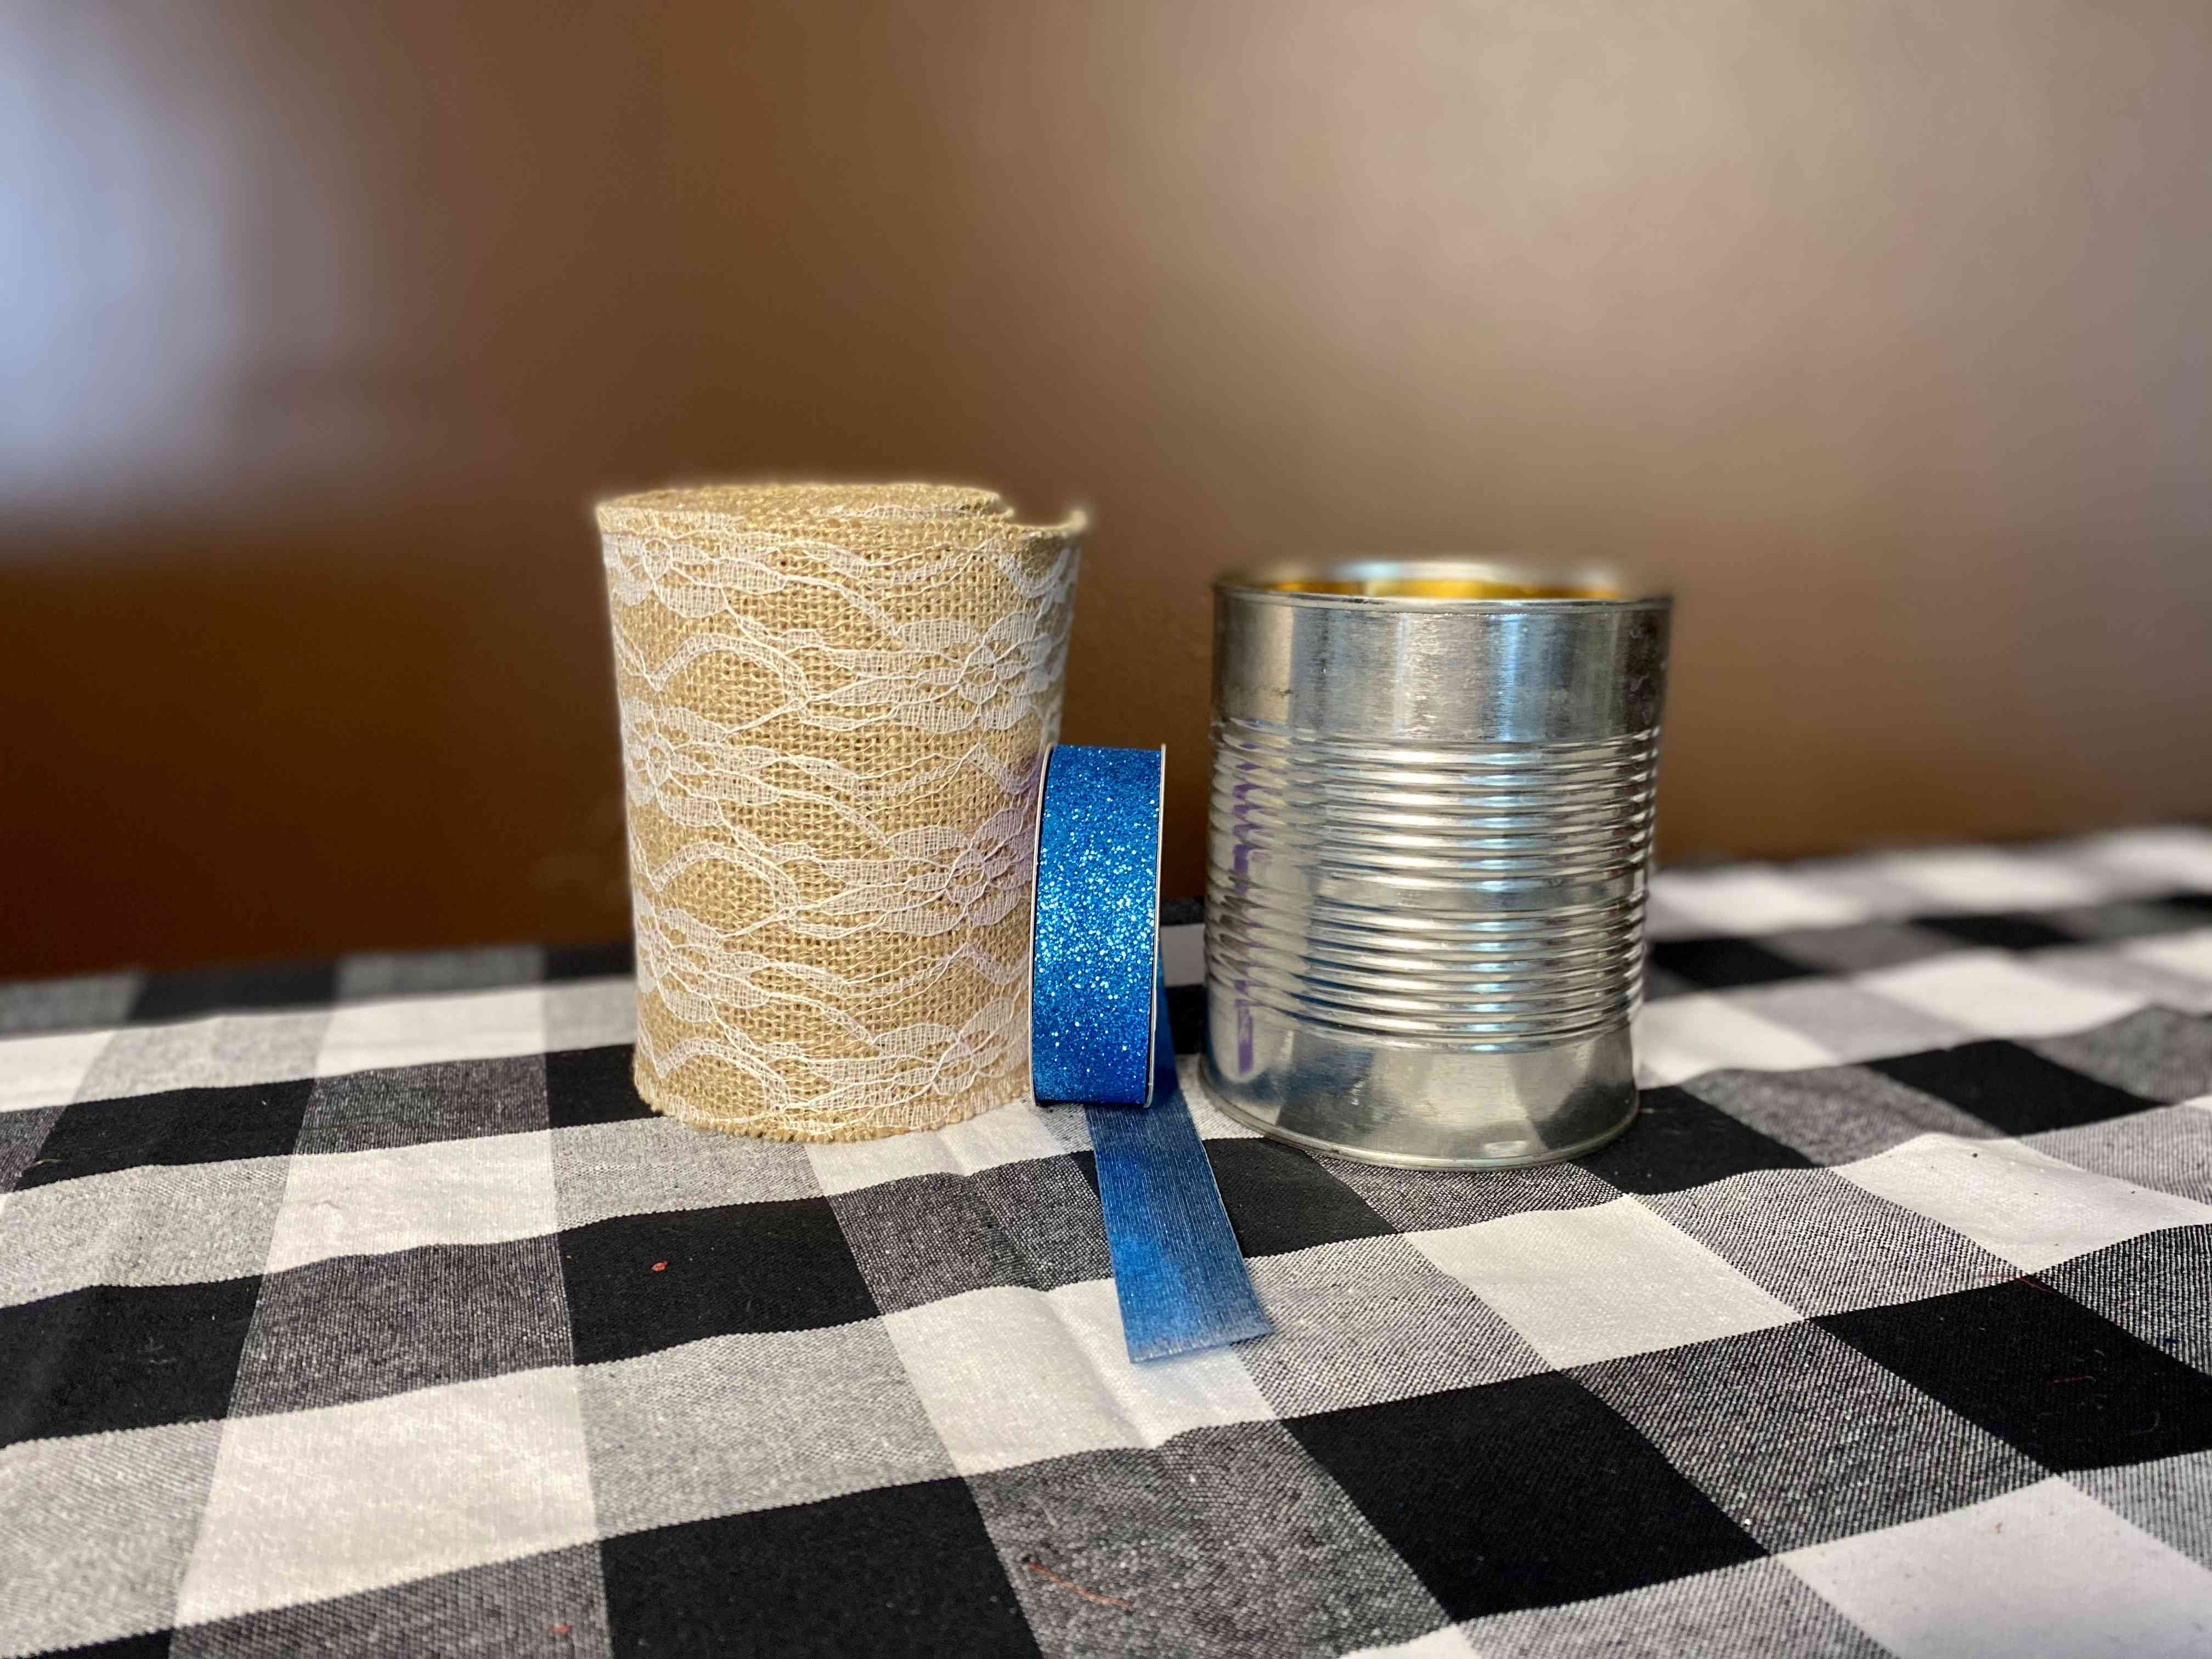 Homemade centerpiece made from a can, burlap, lace, and ribbon